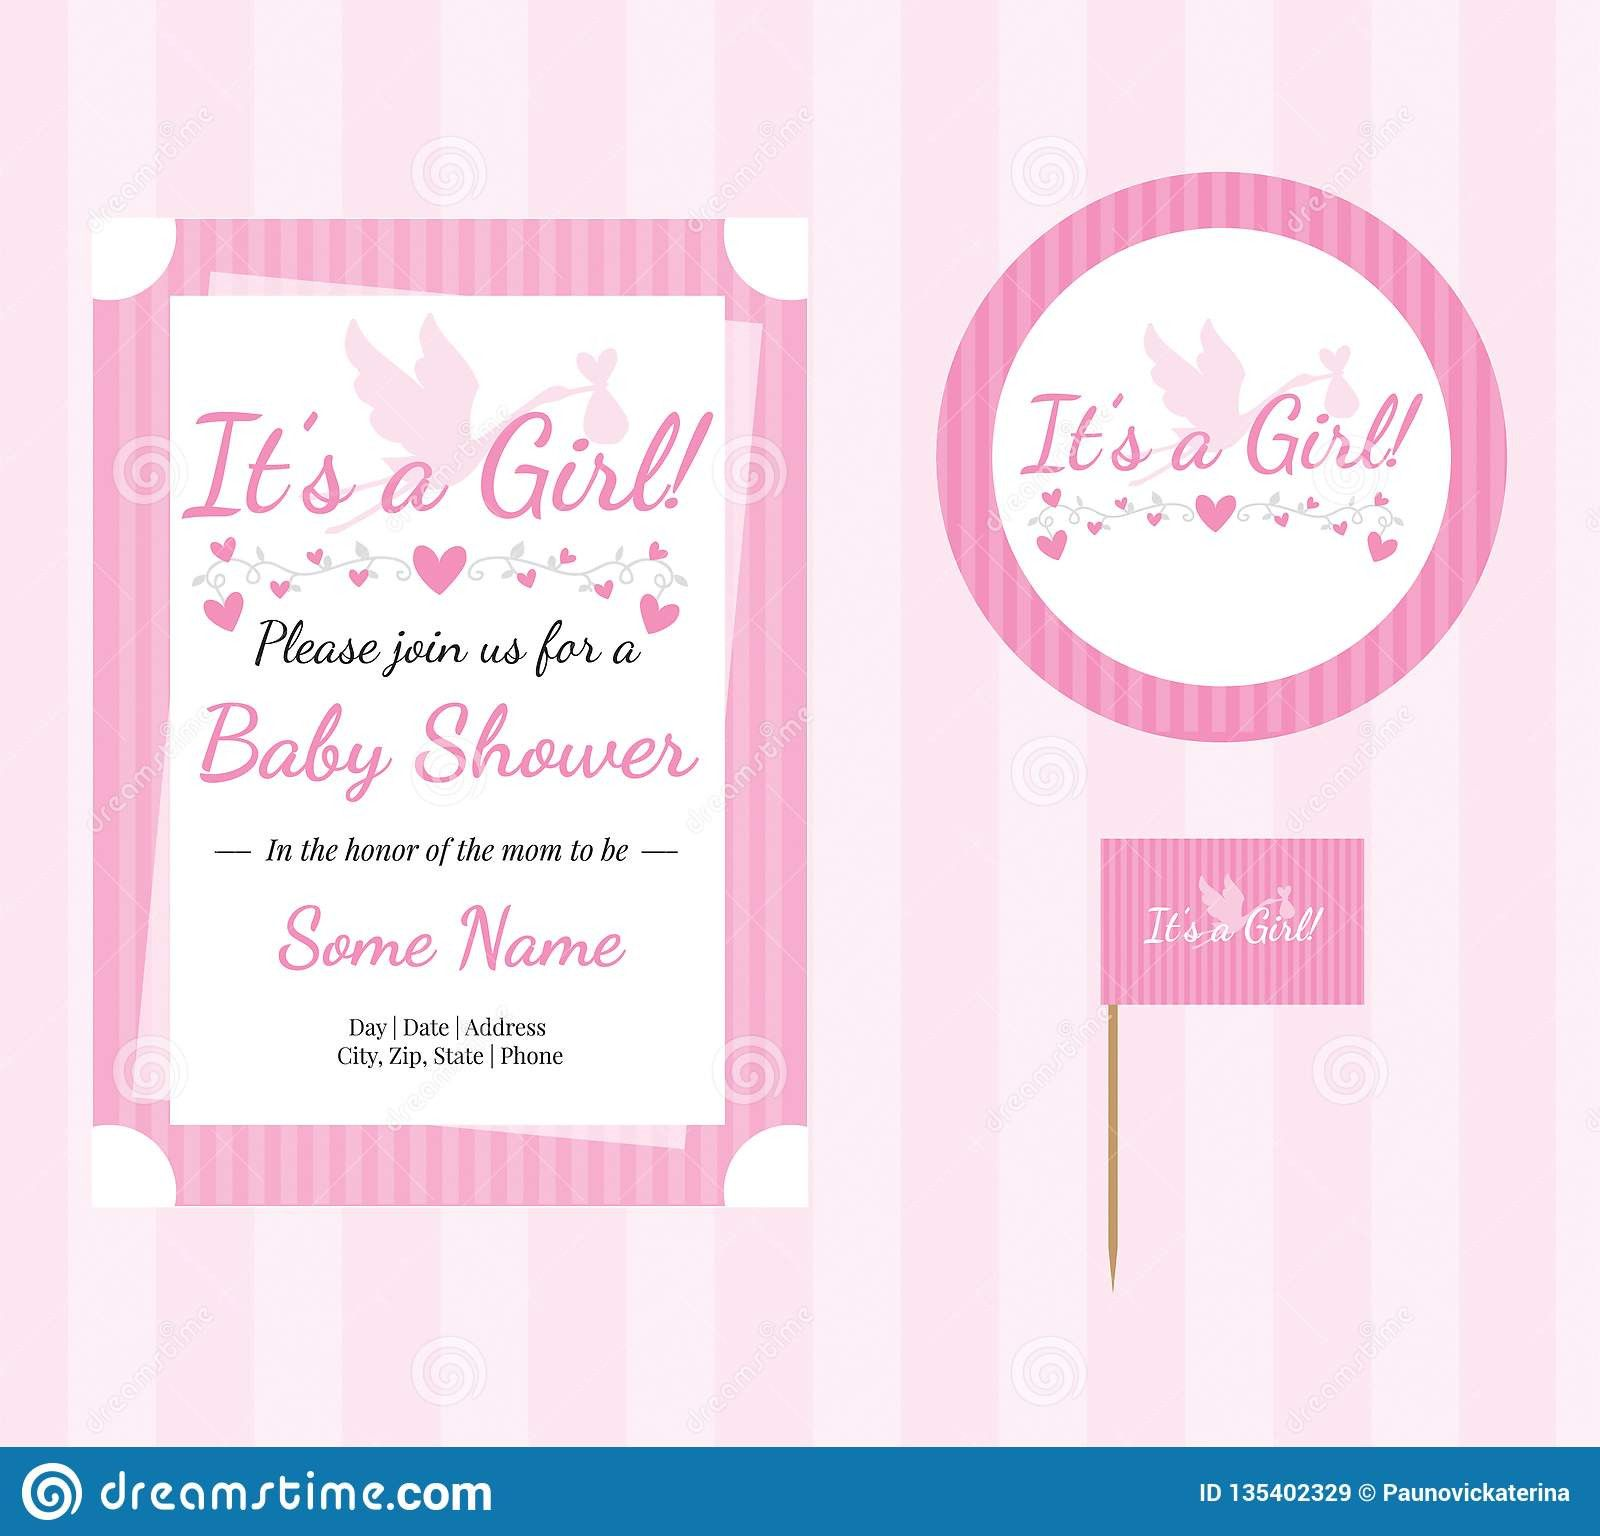 Princess Crown Invitation Template Elegant Baby Shower Baby Girl